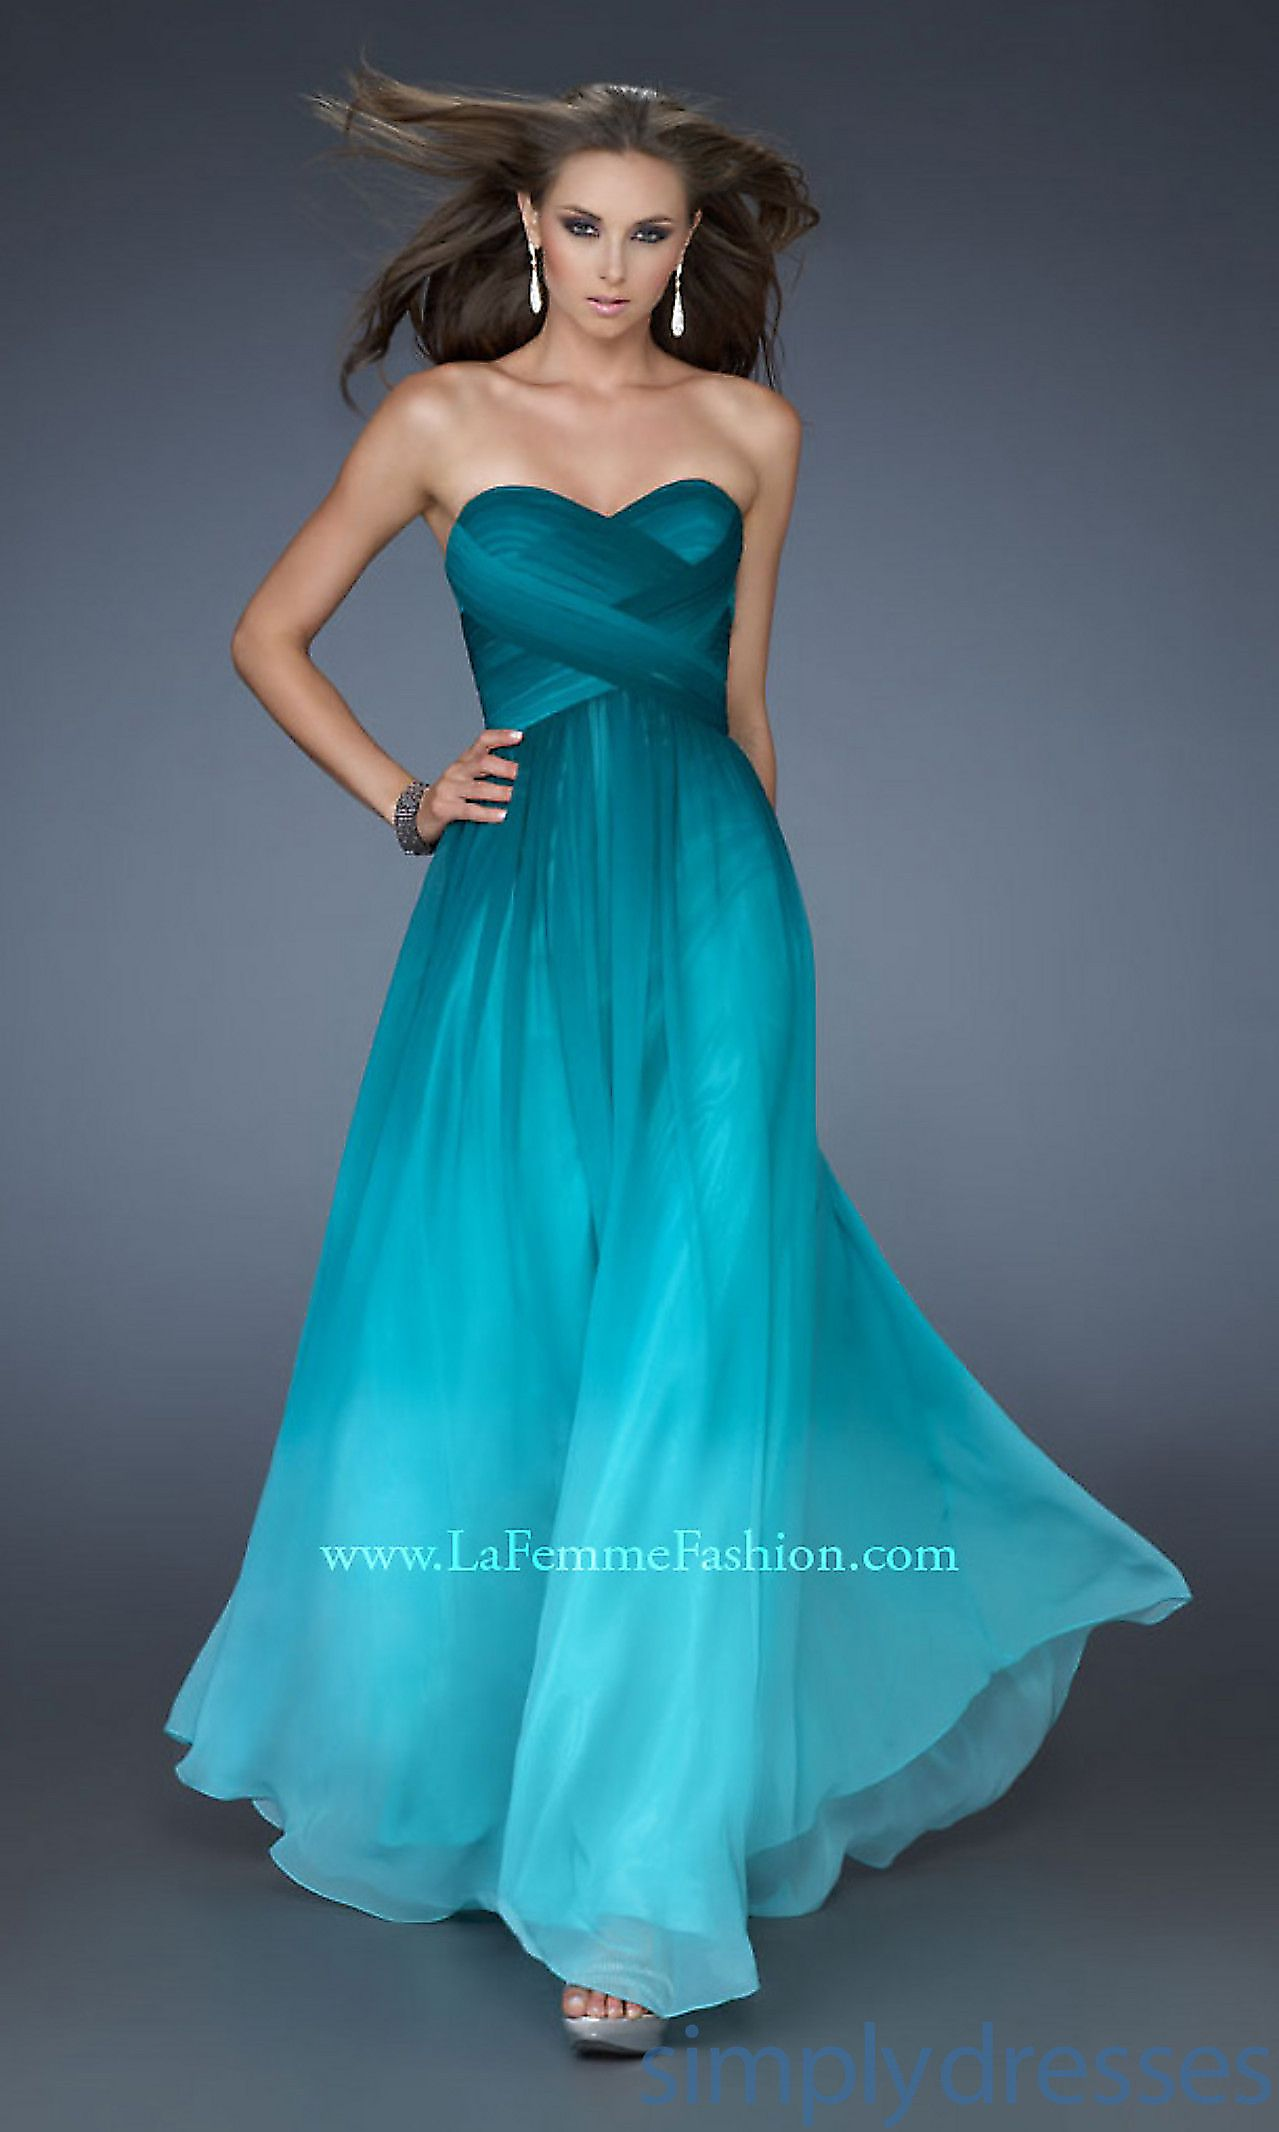 Perfect prom dress for me simple but oh so beautiful stunning